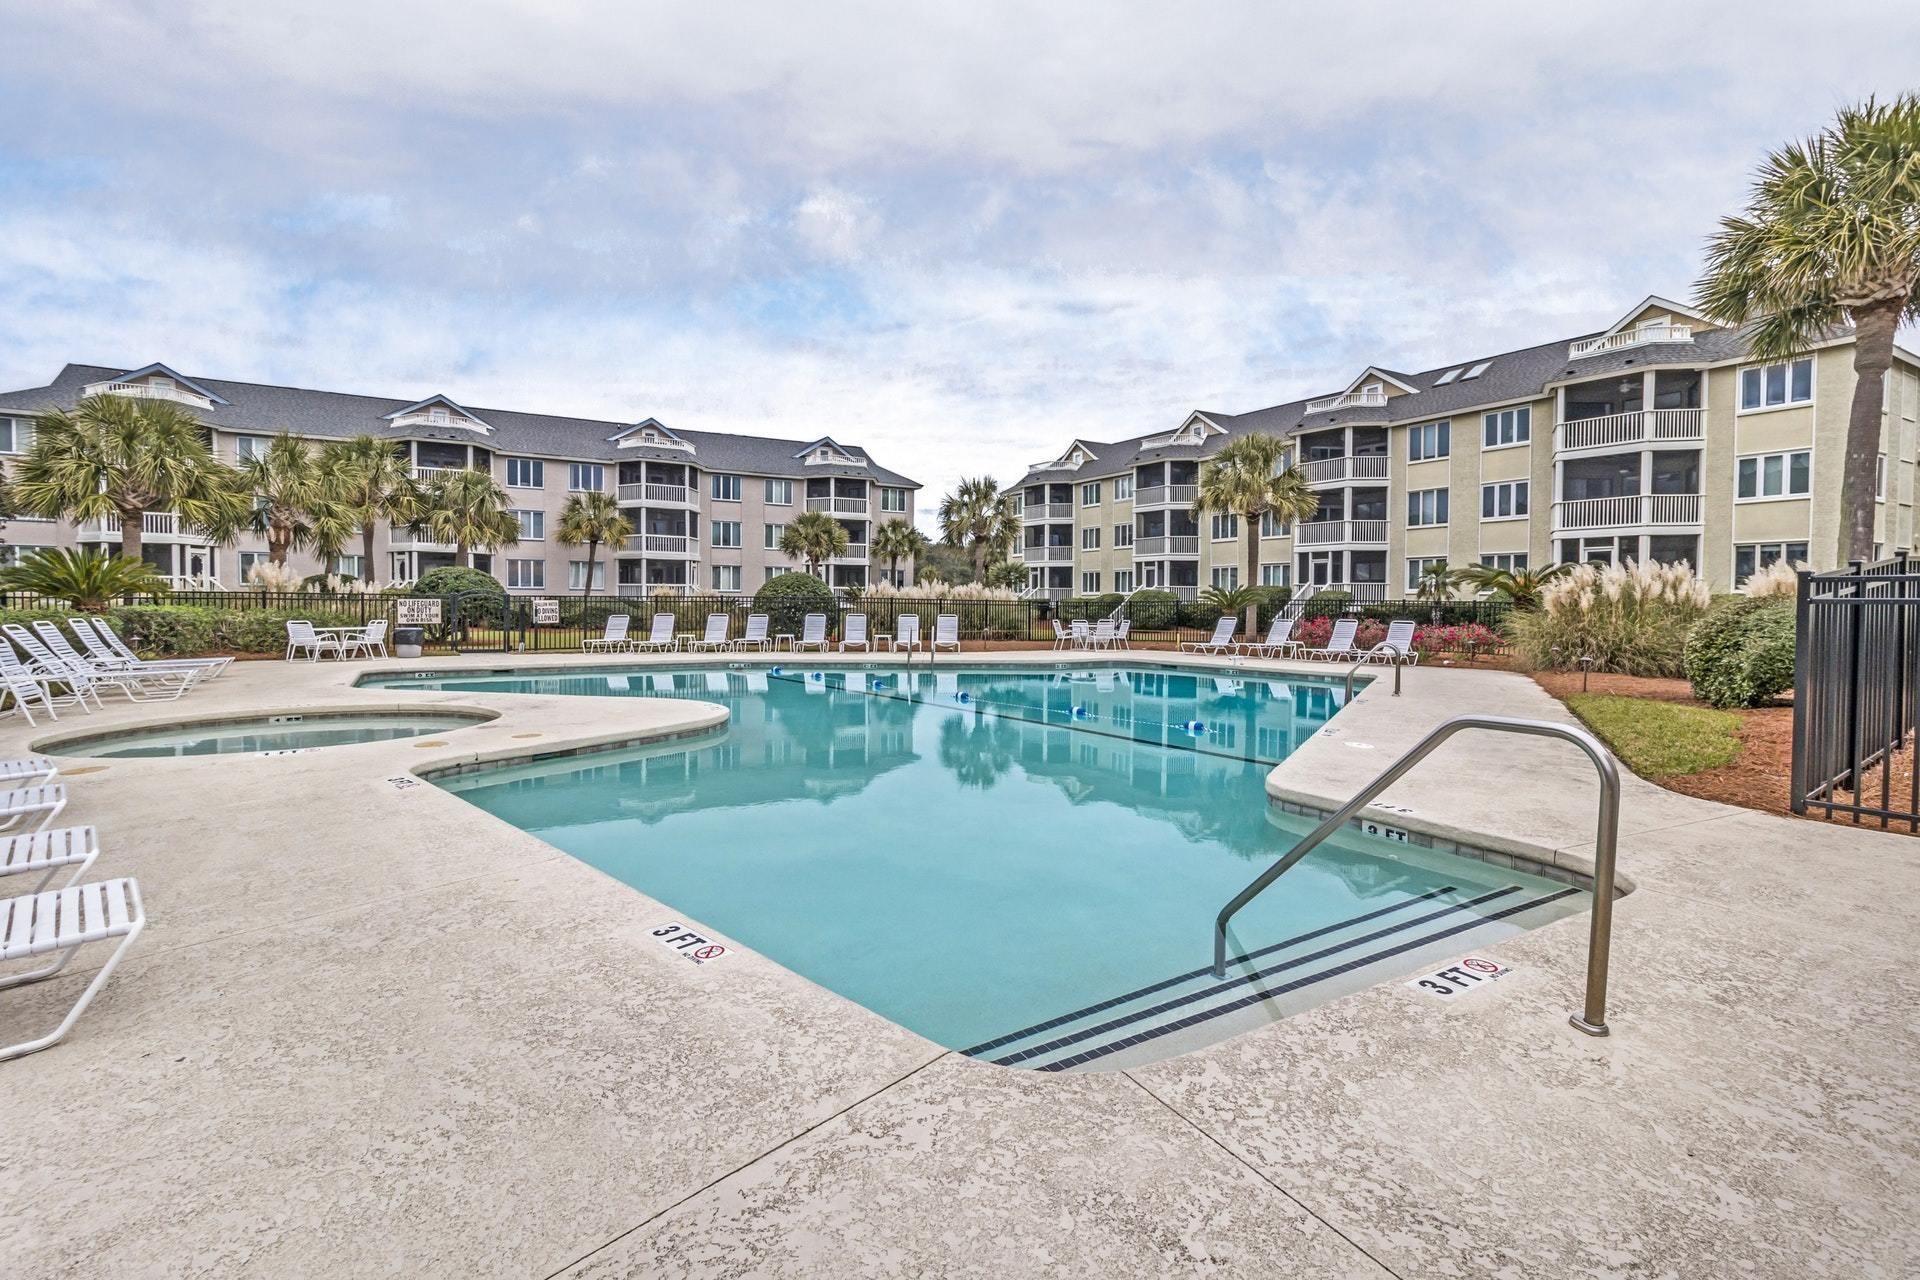 Wild Dunes Resort Homes For Sale - 102 I Tidewater, Isle of Palms, SC - 6